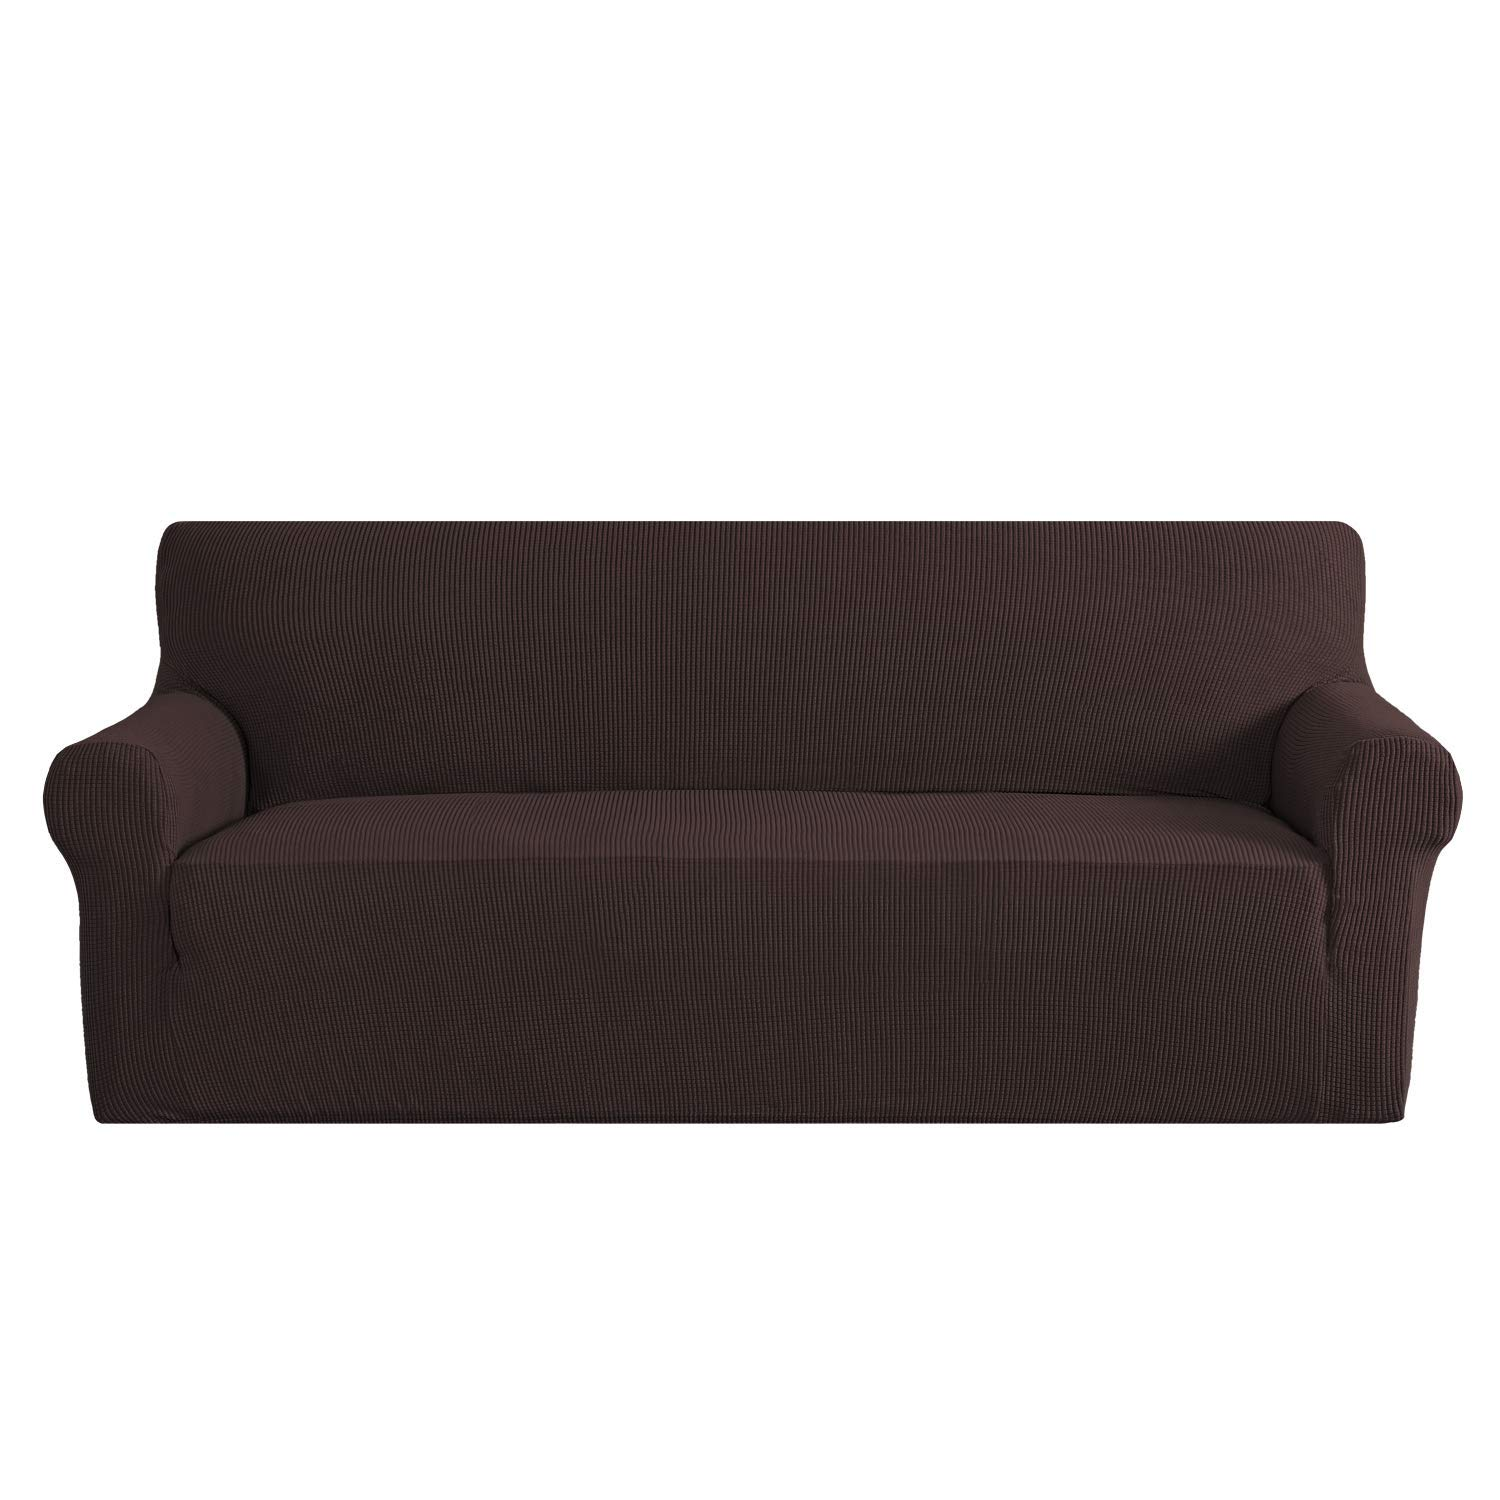 Sofa-Cover-Stretch-1-2-3-Seater-Easy-Fit-Lounge-Couch-Slipcovers-Chair-Protector thumbnail 33